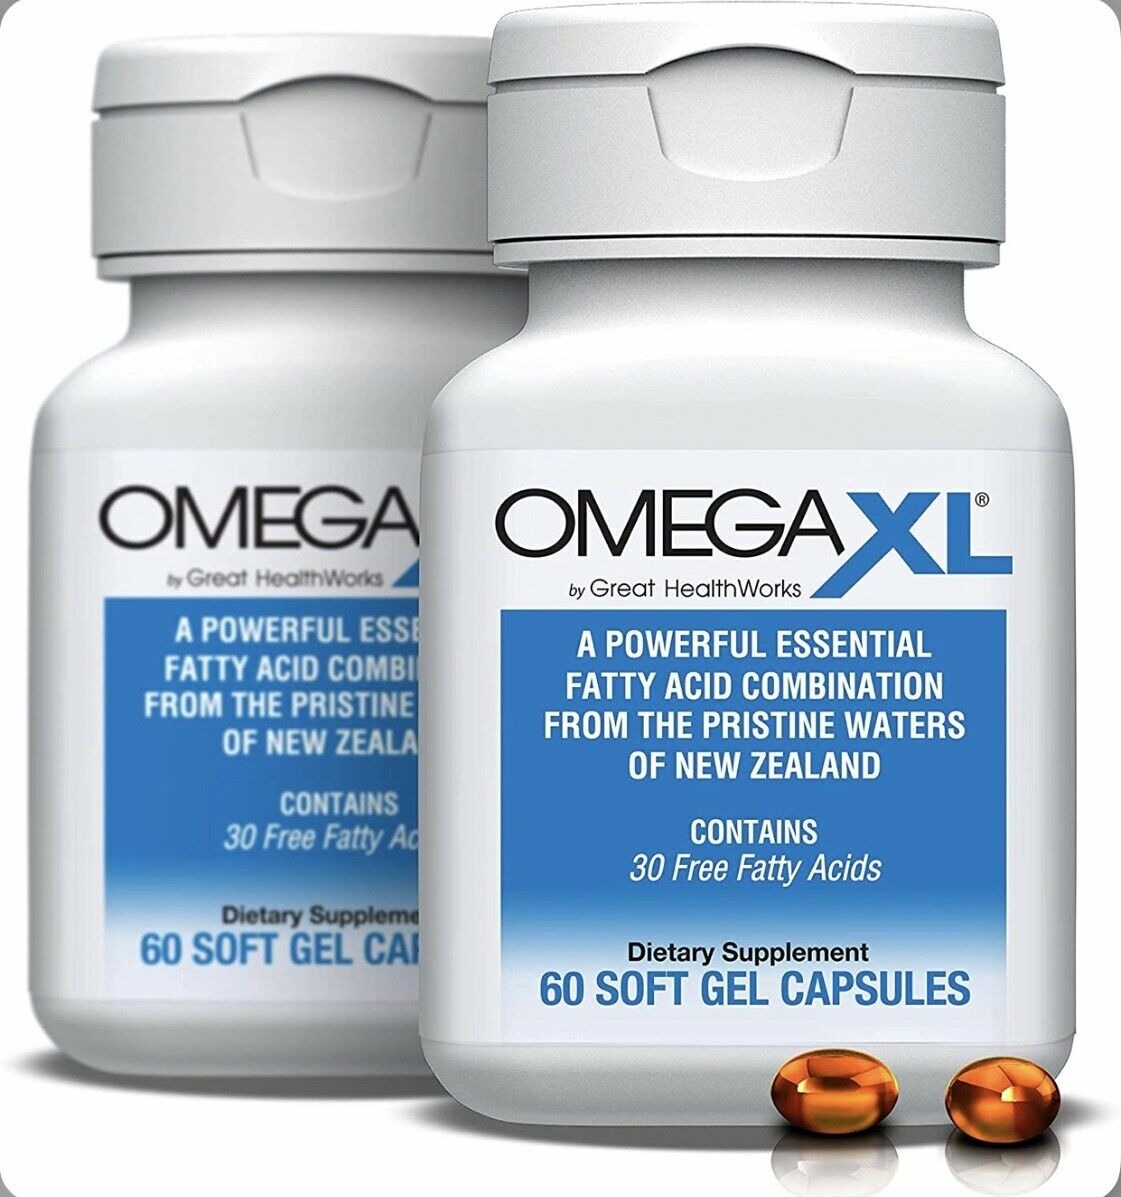 OmegaXL 60ct Great Healthworks, 2 Pack ( 60 Capsules + 60 Capsules )